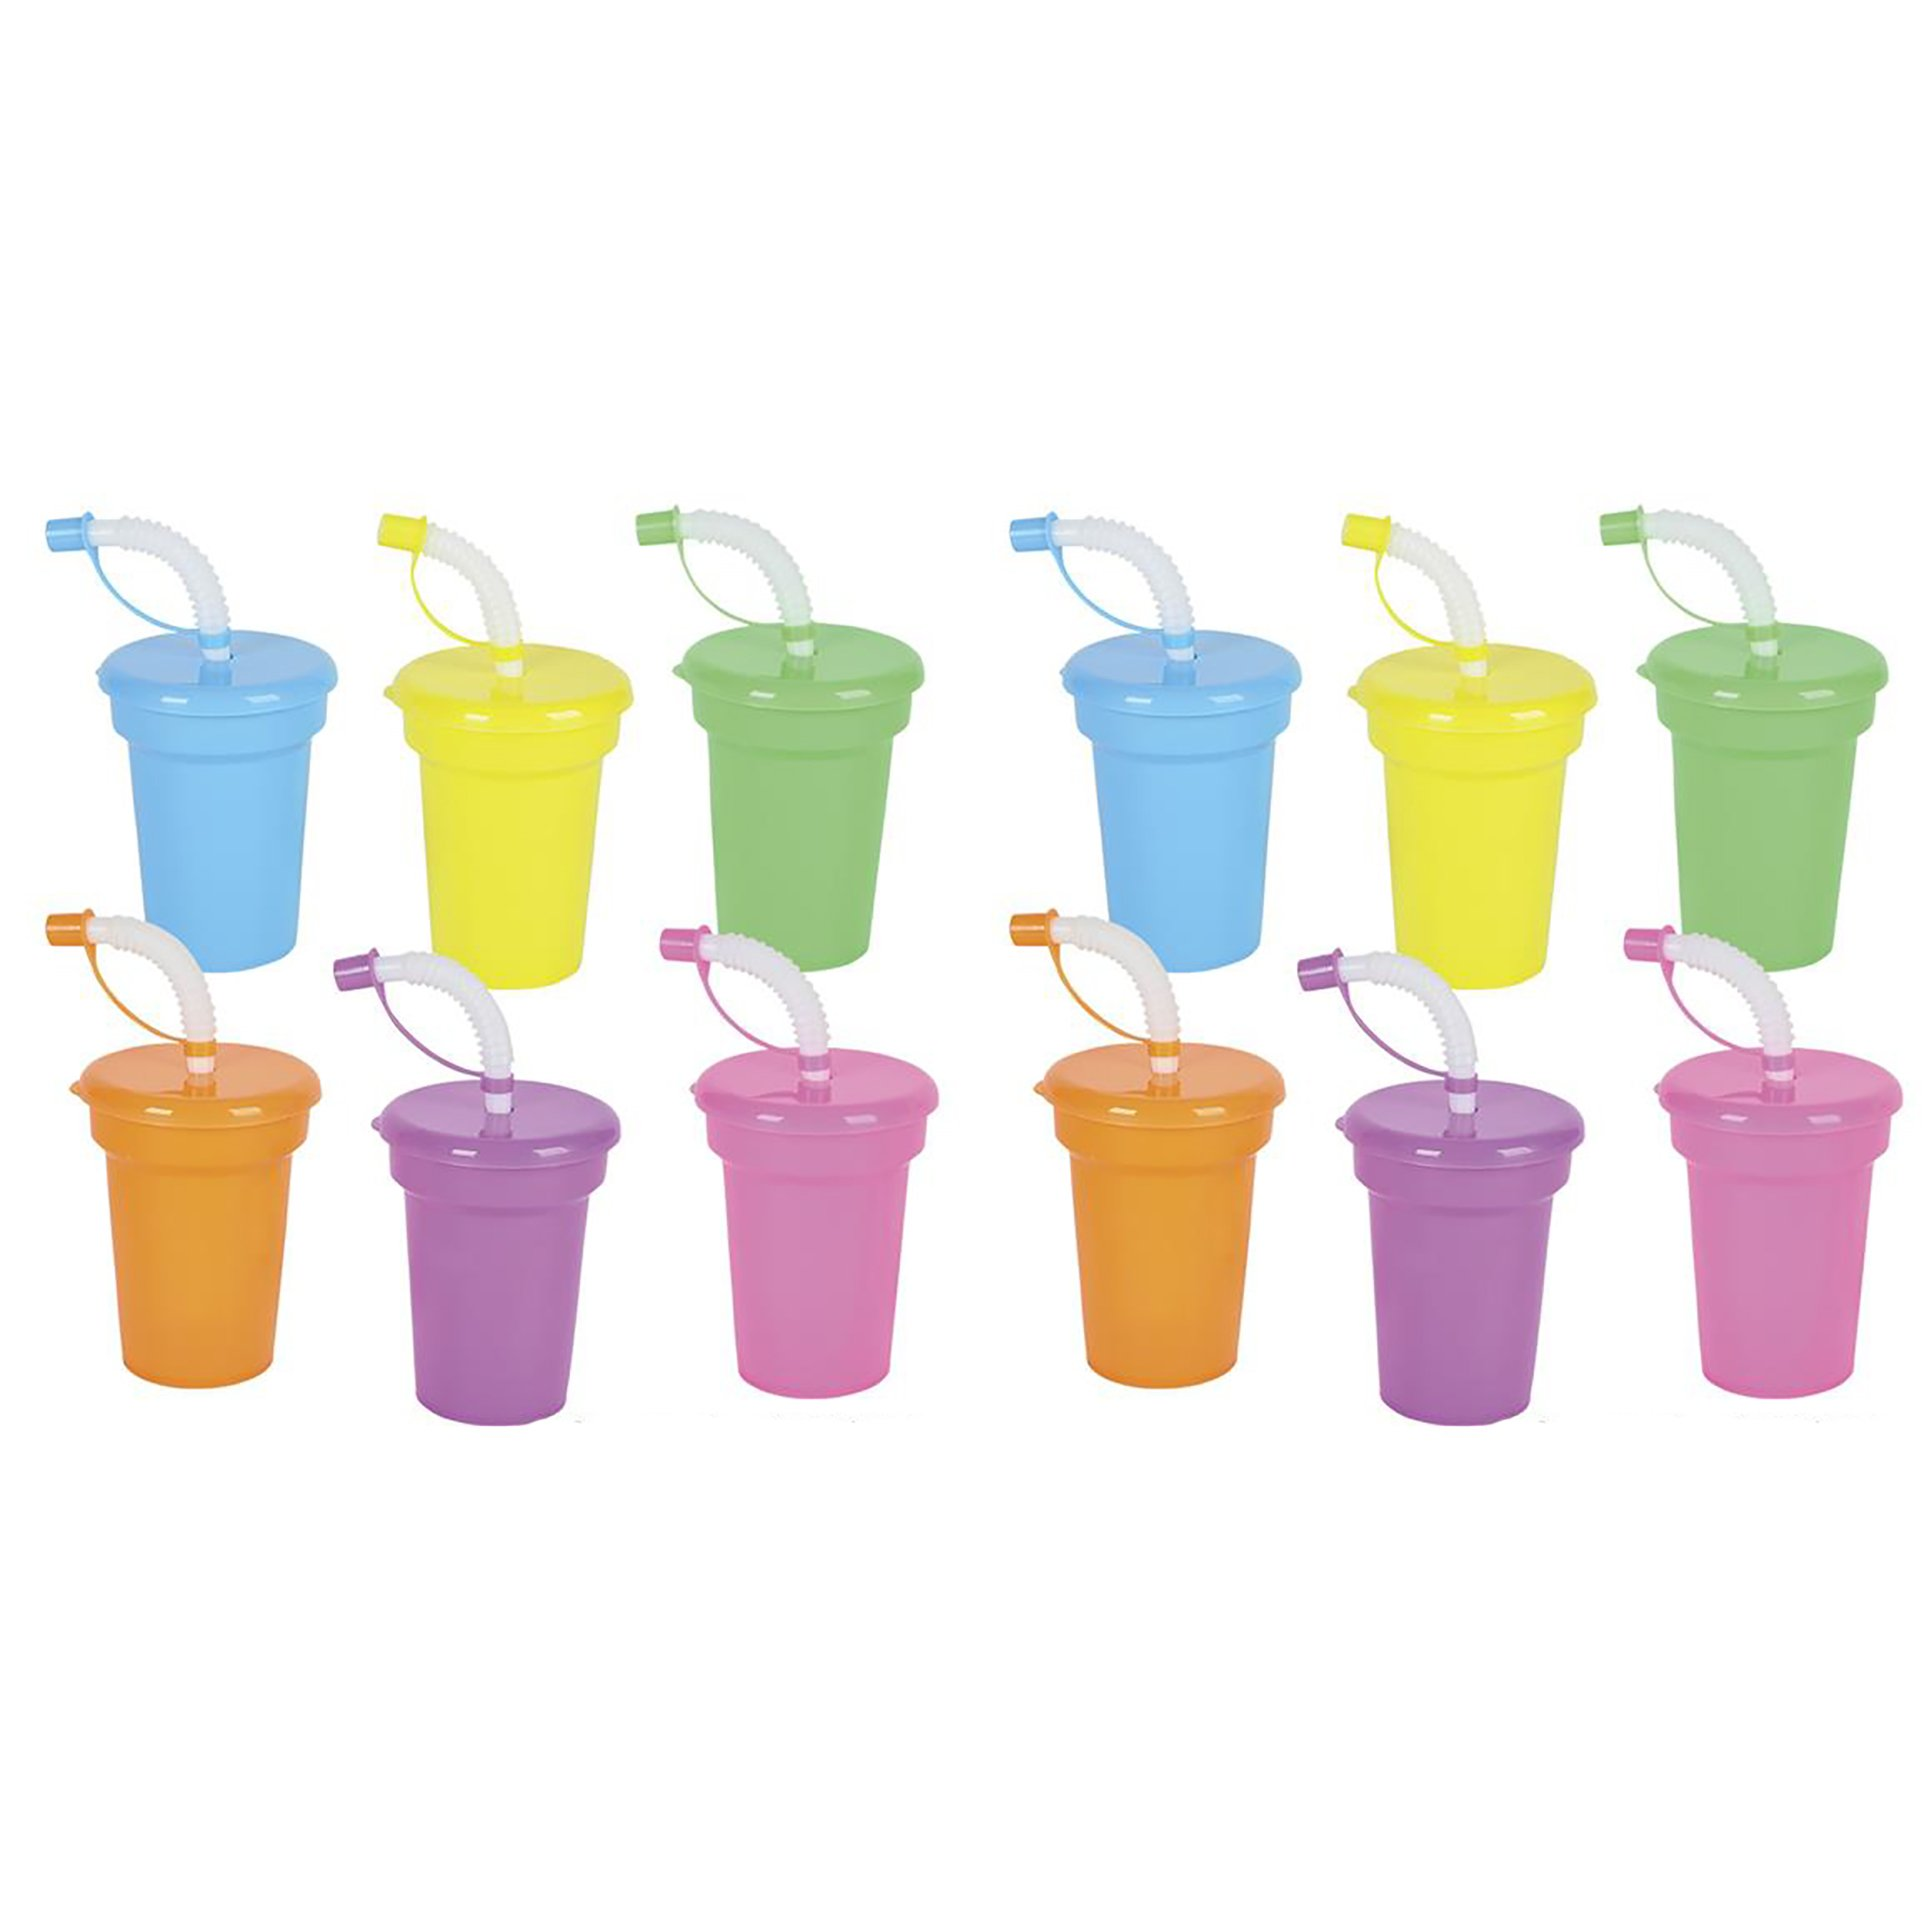 Kicko Neon Sipper Cups – 5.5 Inches Cool and Fun Colorful Neon Spill-Proof Cup with Lid and Straw (Pack of 12) – Great for School Events, Theme Parties, and Birthday Celebrations – Party Supplies